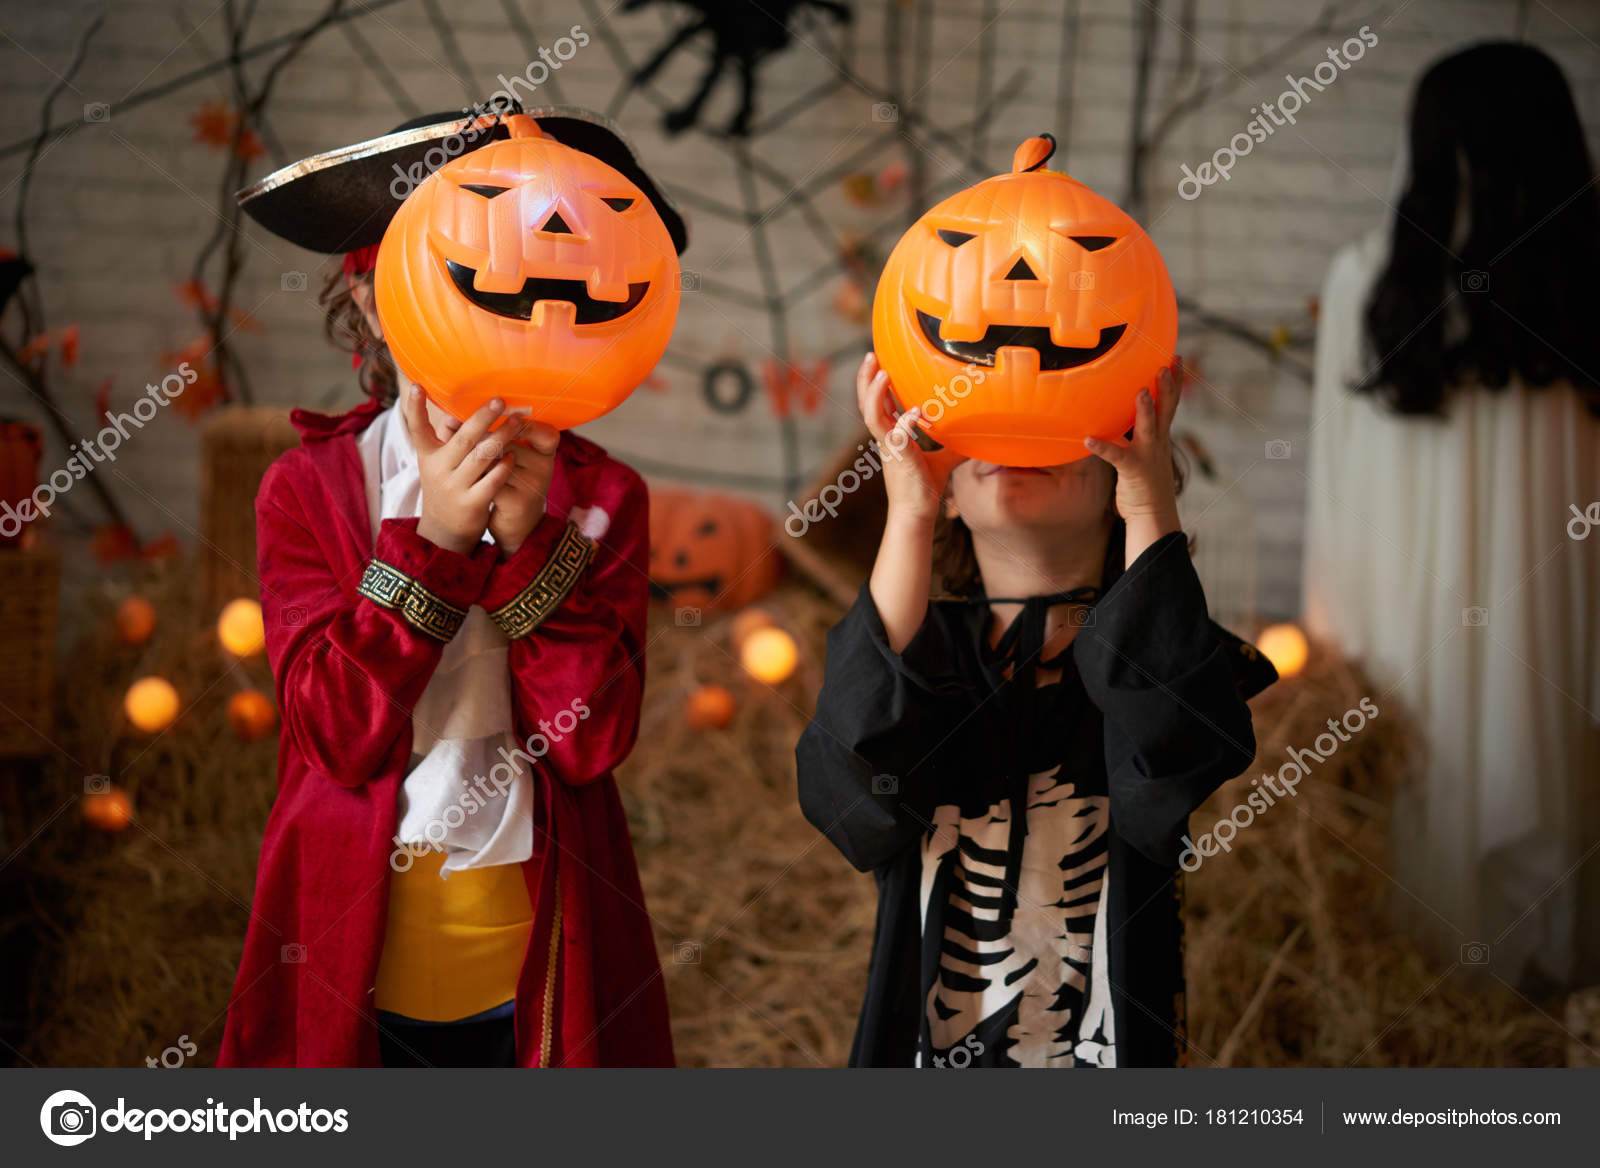 depositphotos stock photo children costumes showing scary pumpkin